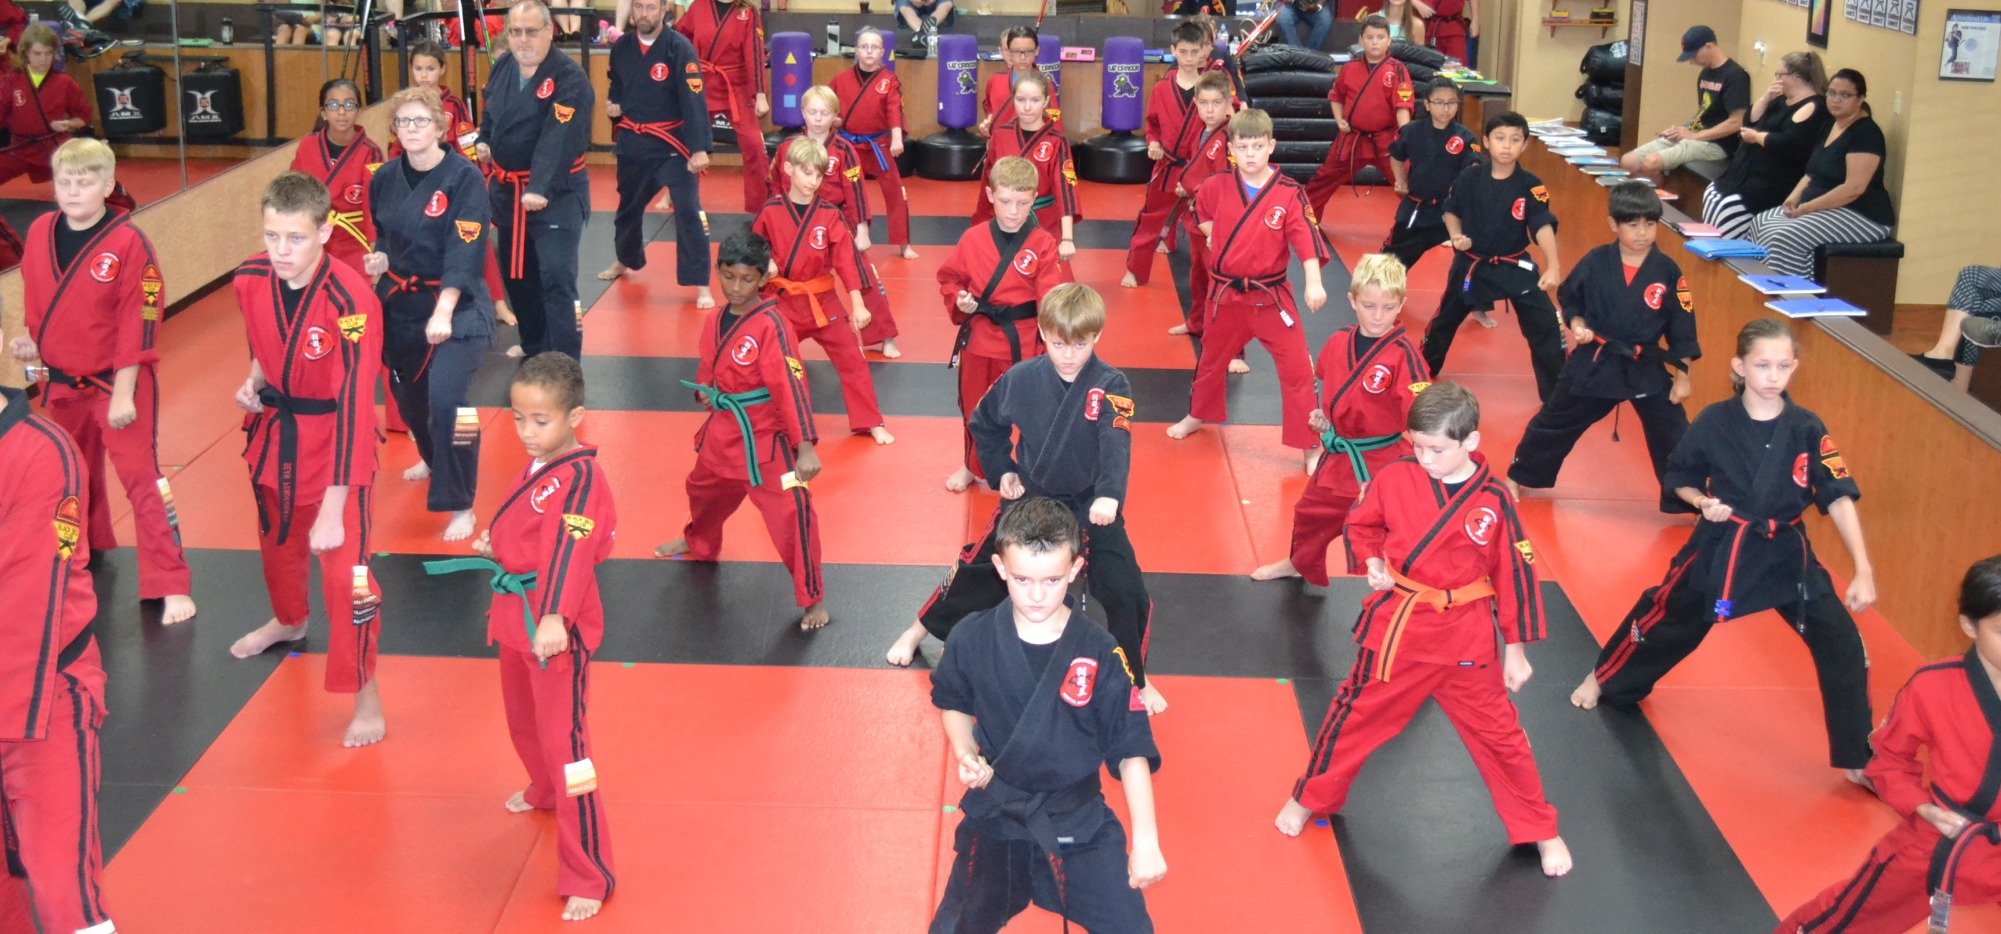 Arrowhead Martial Arts Academy